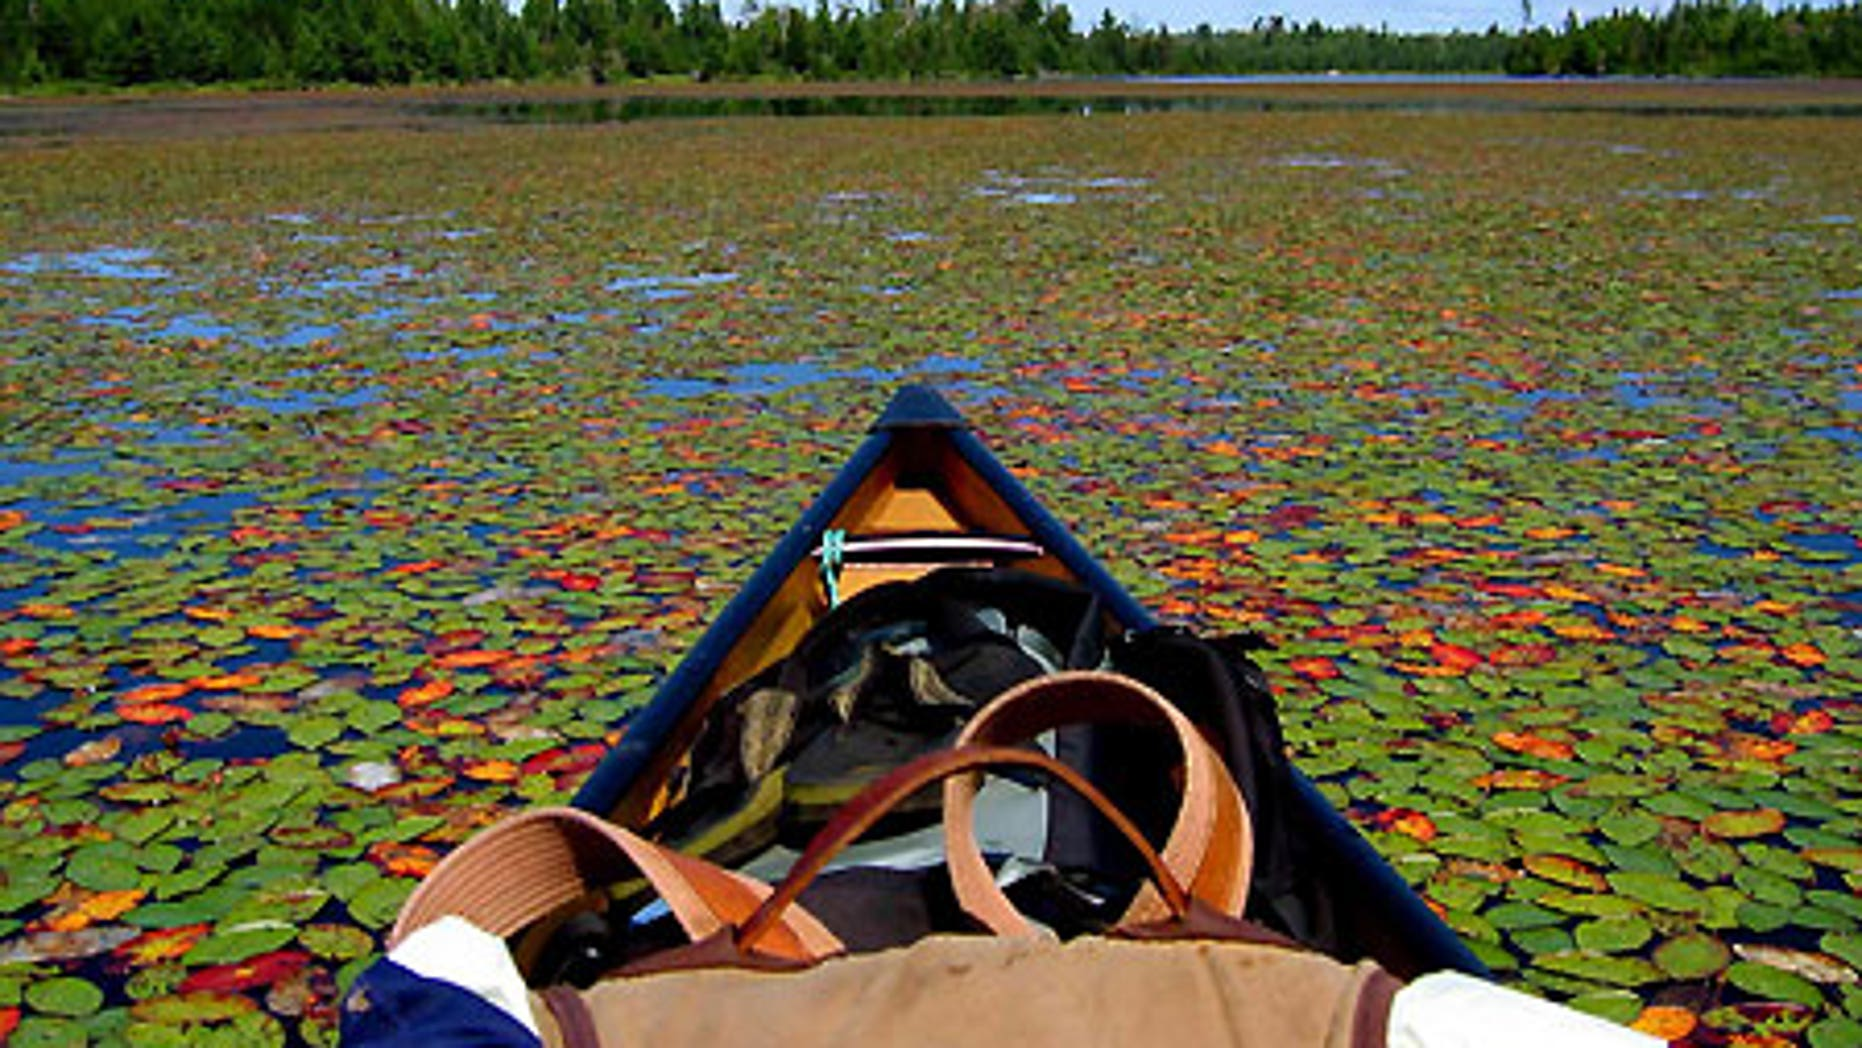 The view from a canoe in the Boundary Waters Canoe Area Wilderness in northern Minnesota.